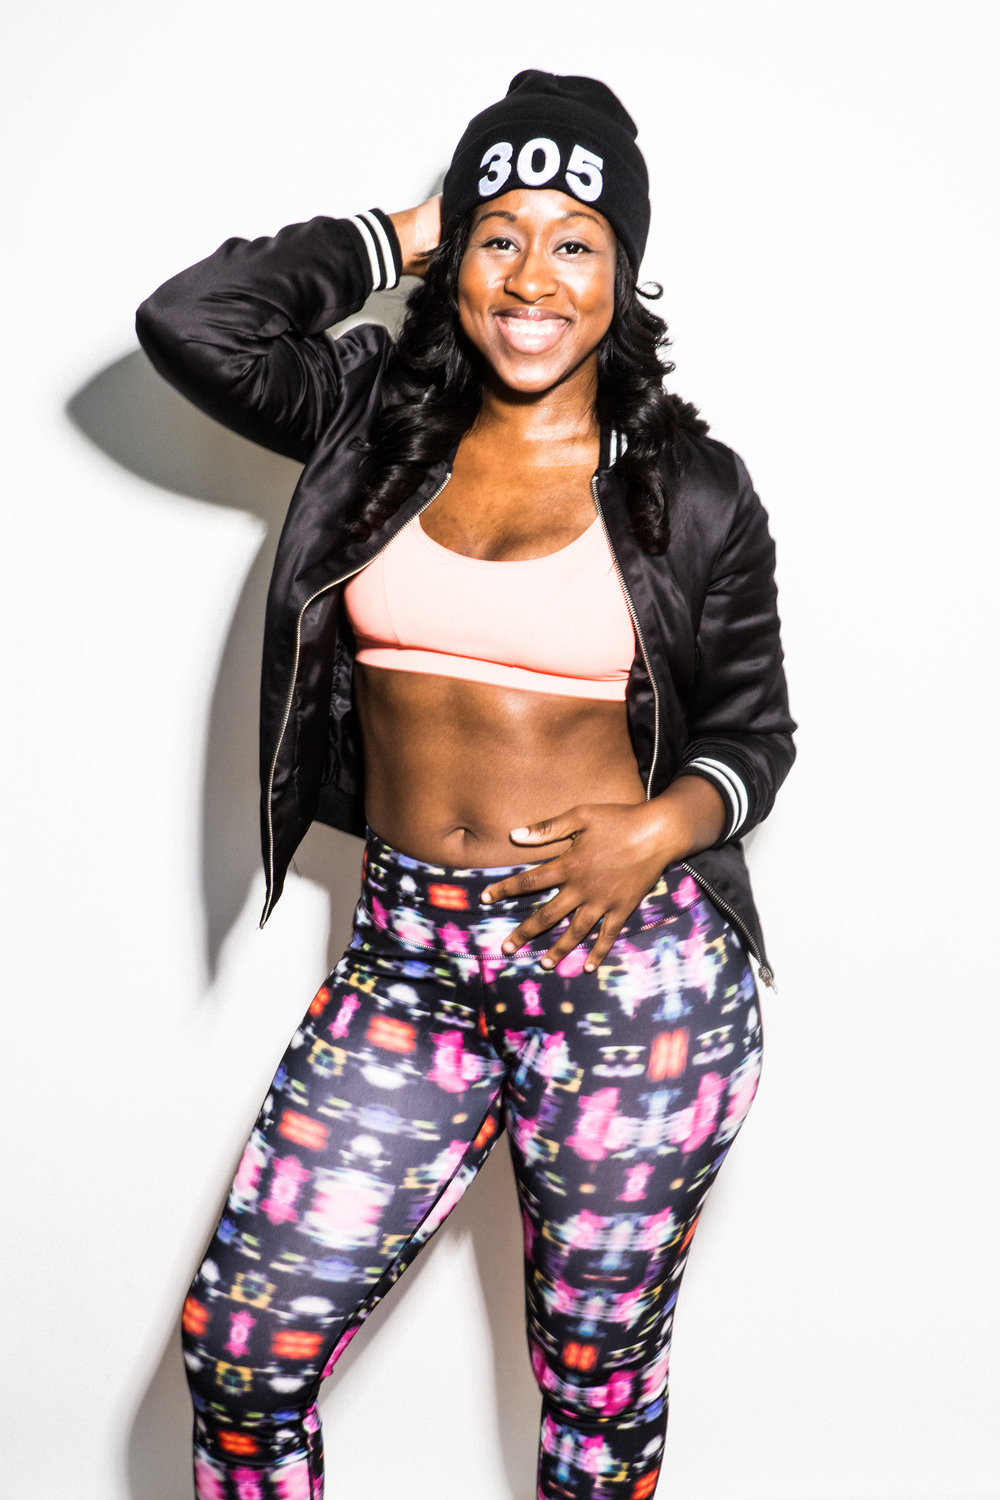 DANIELLE: THE FLAVA MAKER - Down-n-dirty flava, contagiously big moves, and a big dose of hilarious.